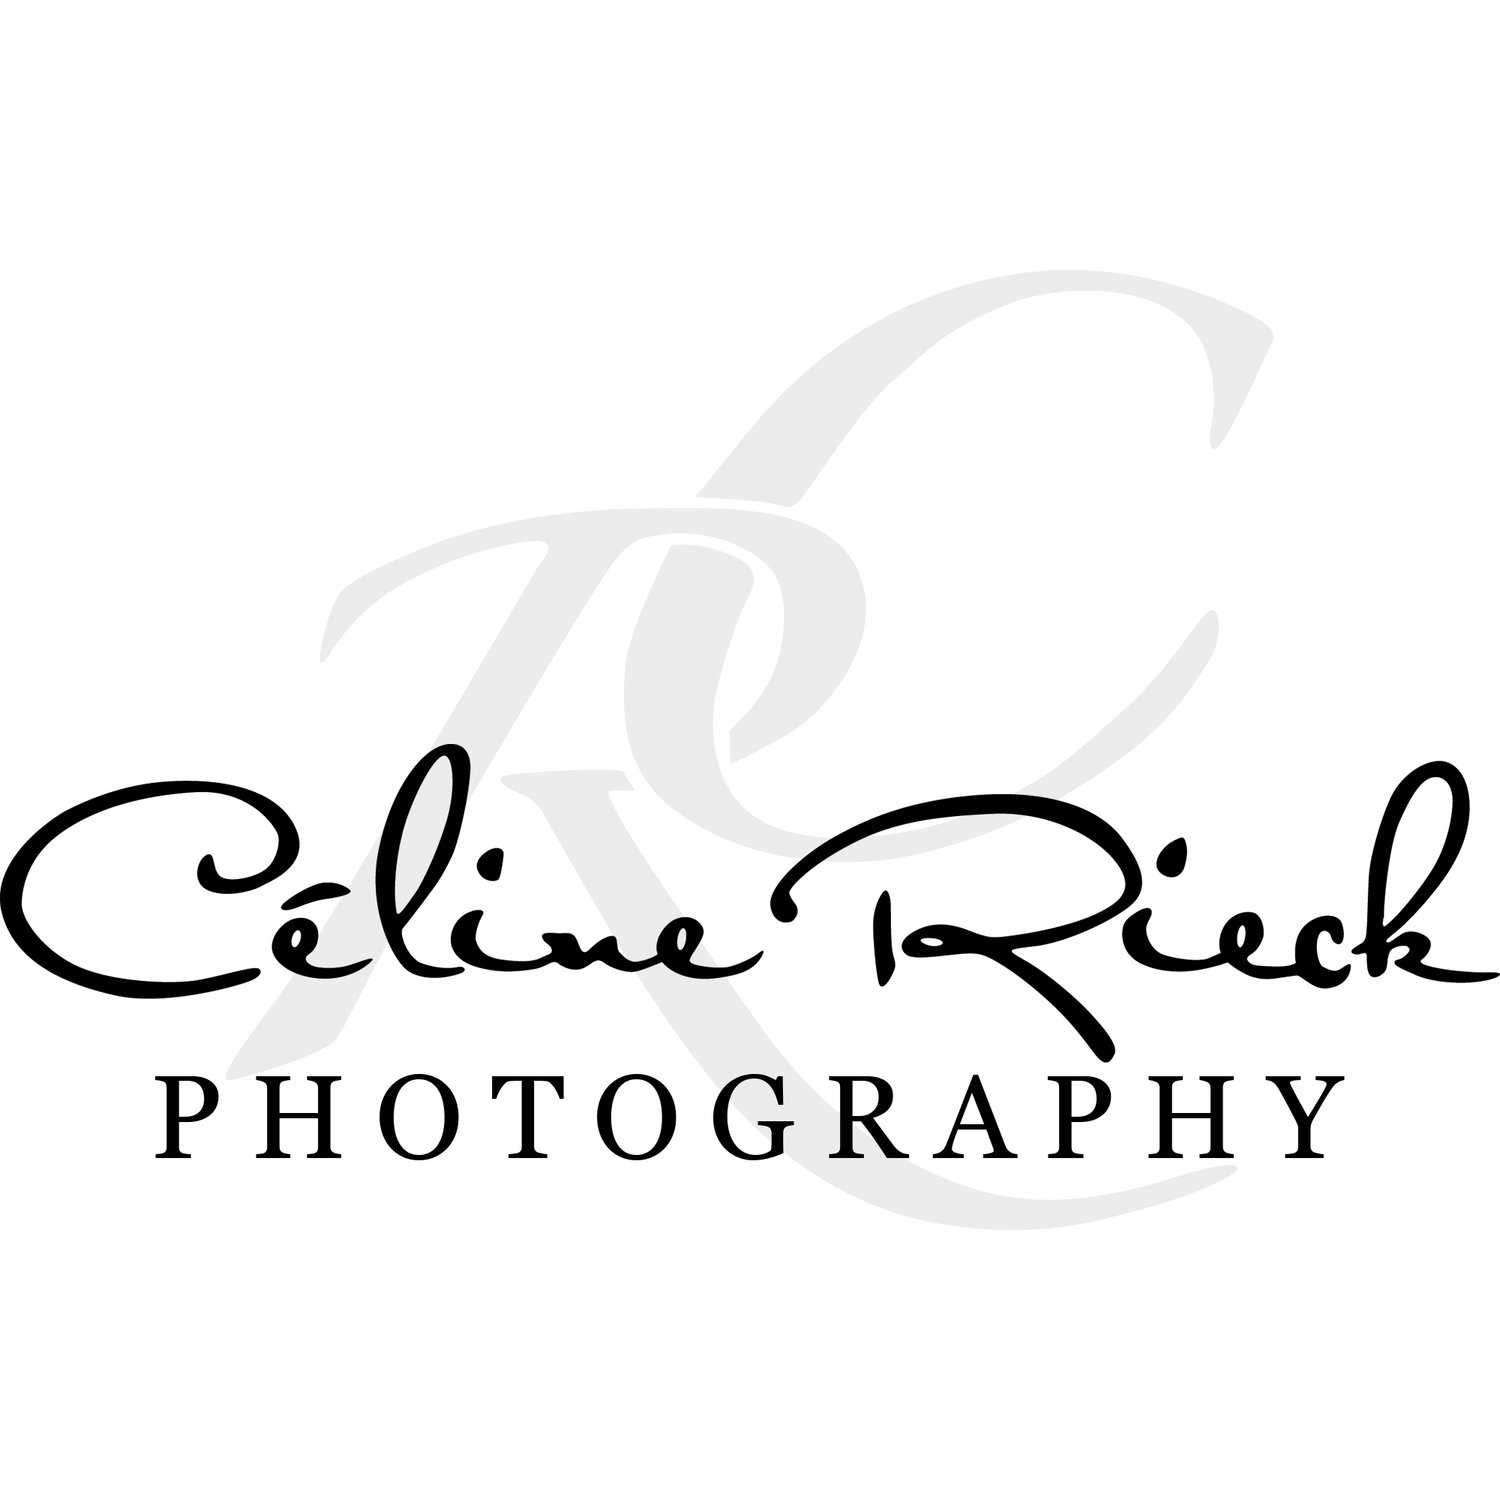 Céline Rieck Photography